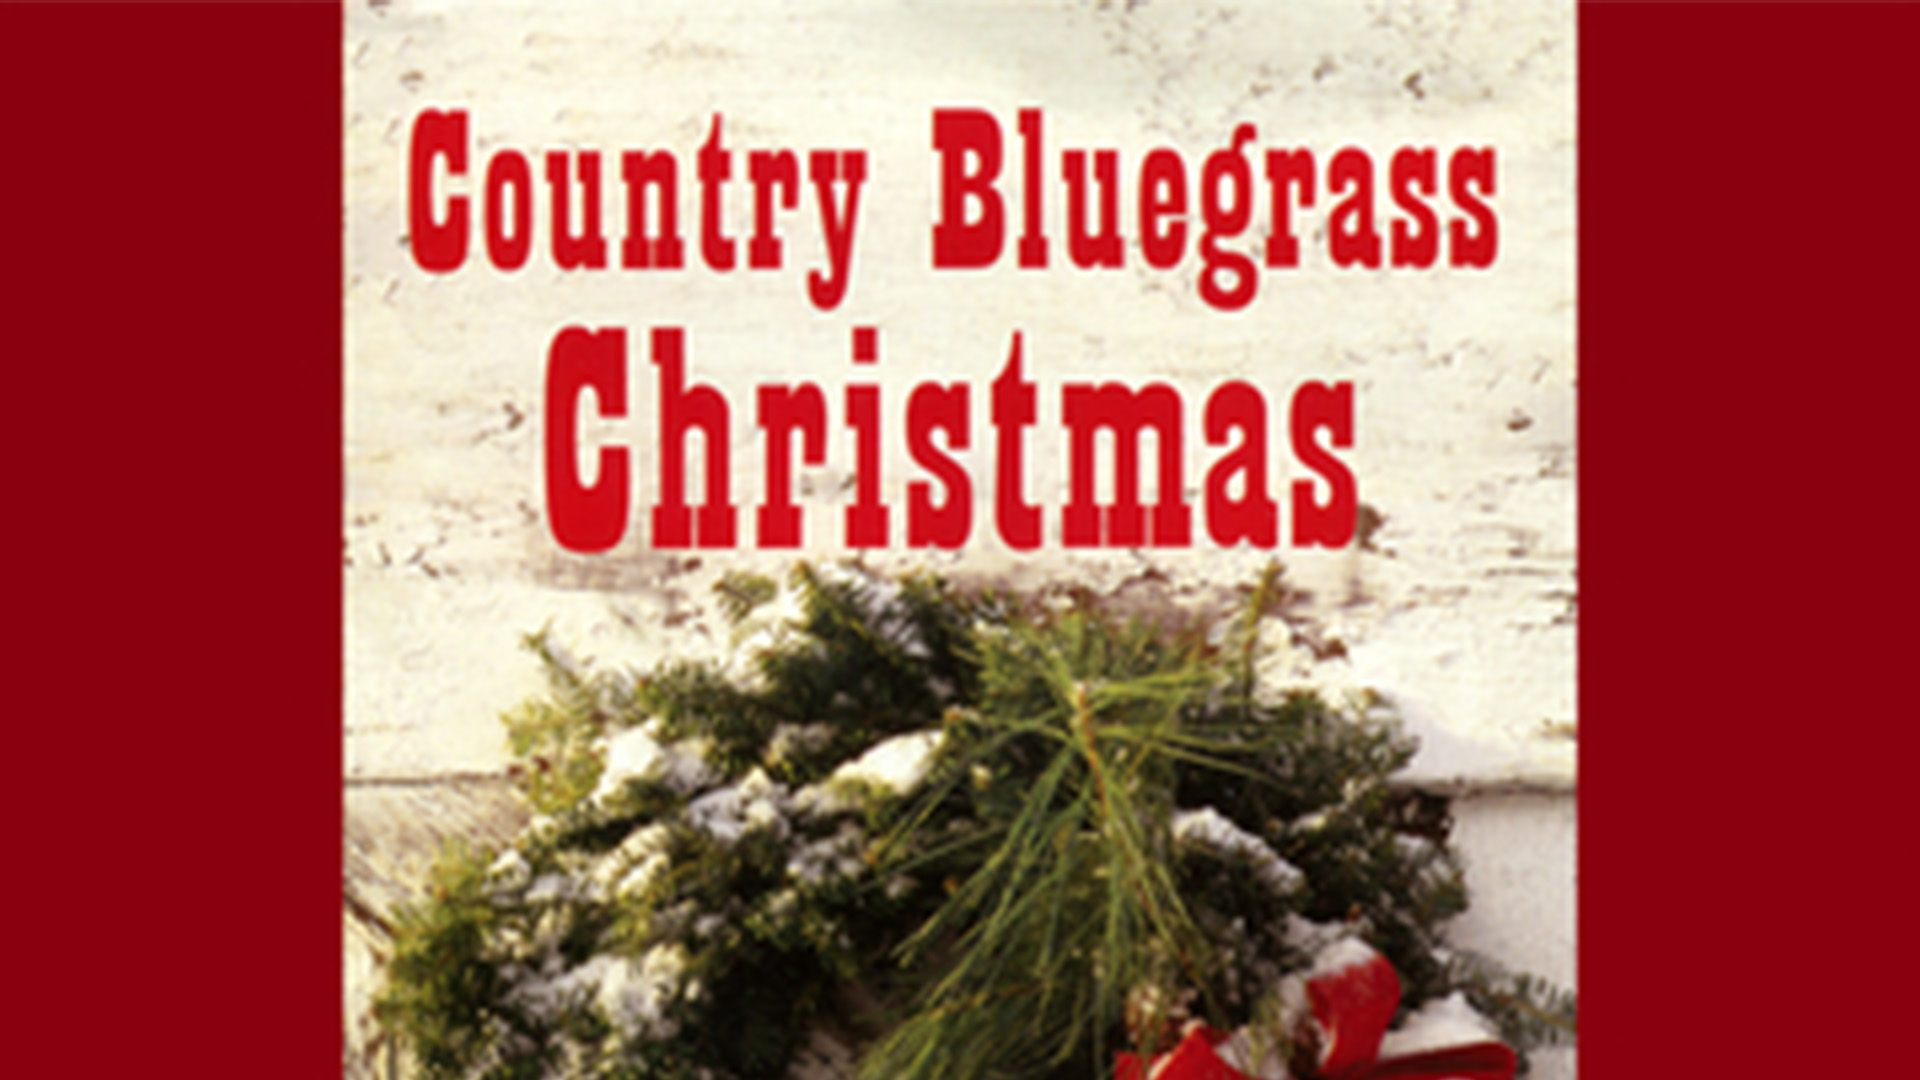 Country Bluegrass Christmas